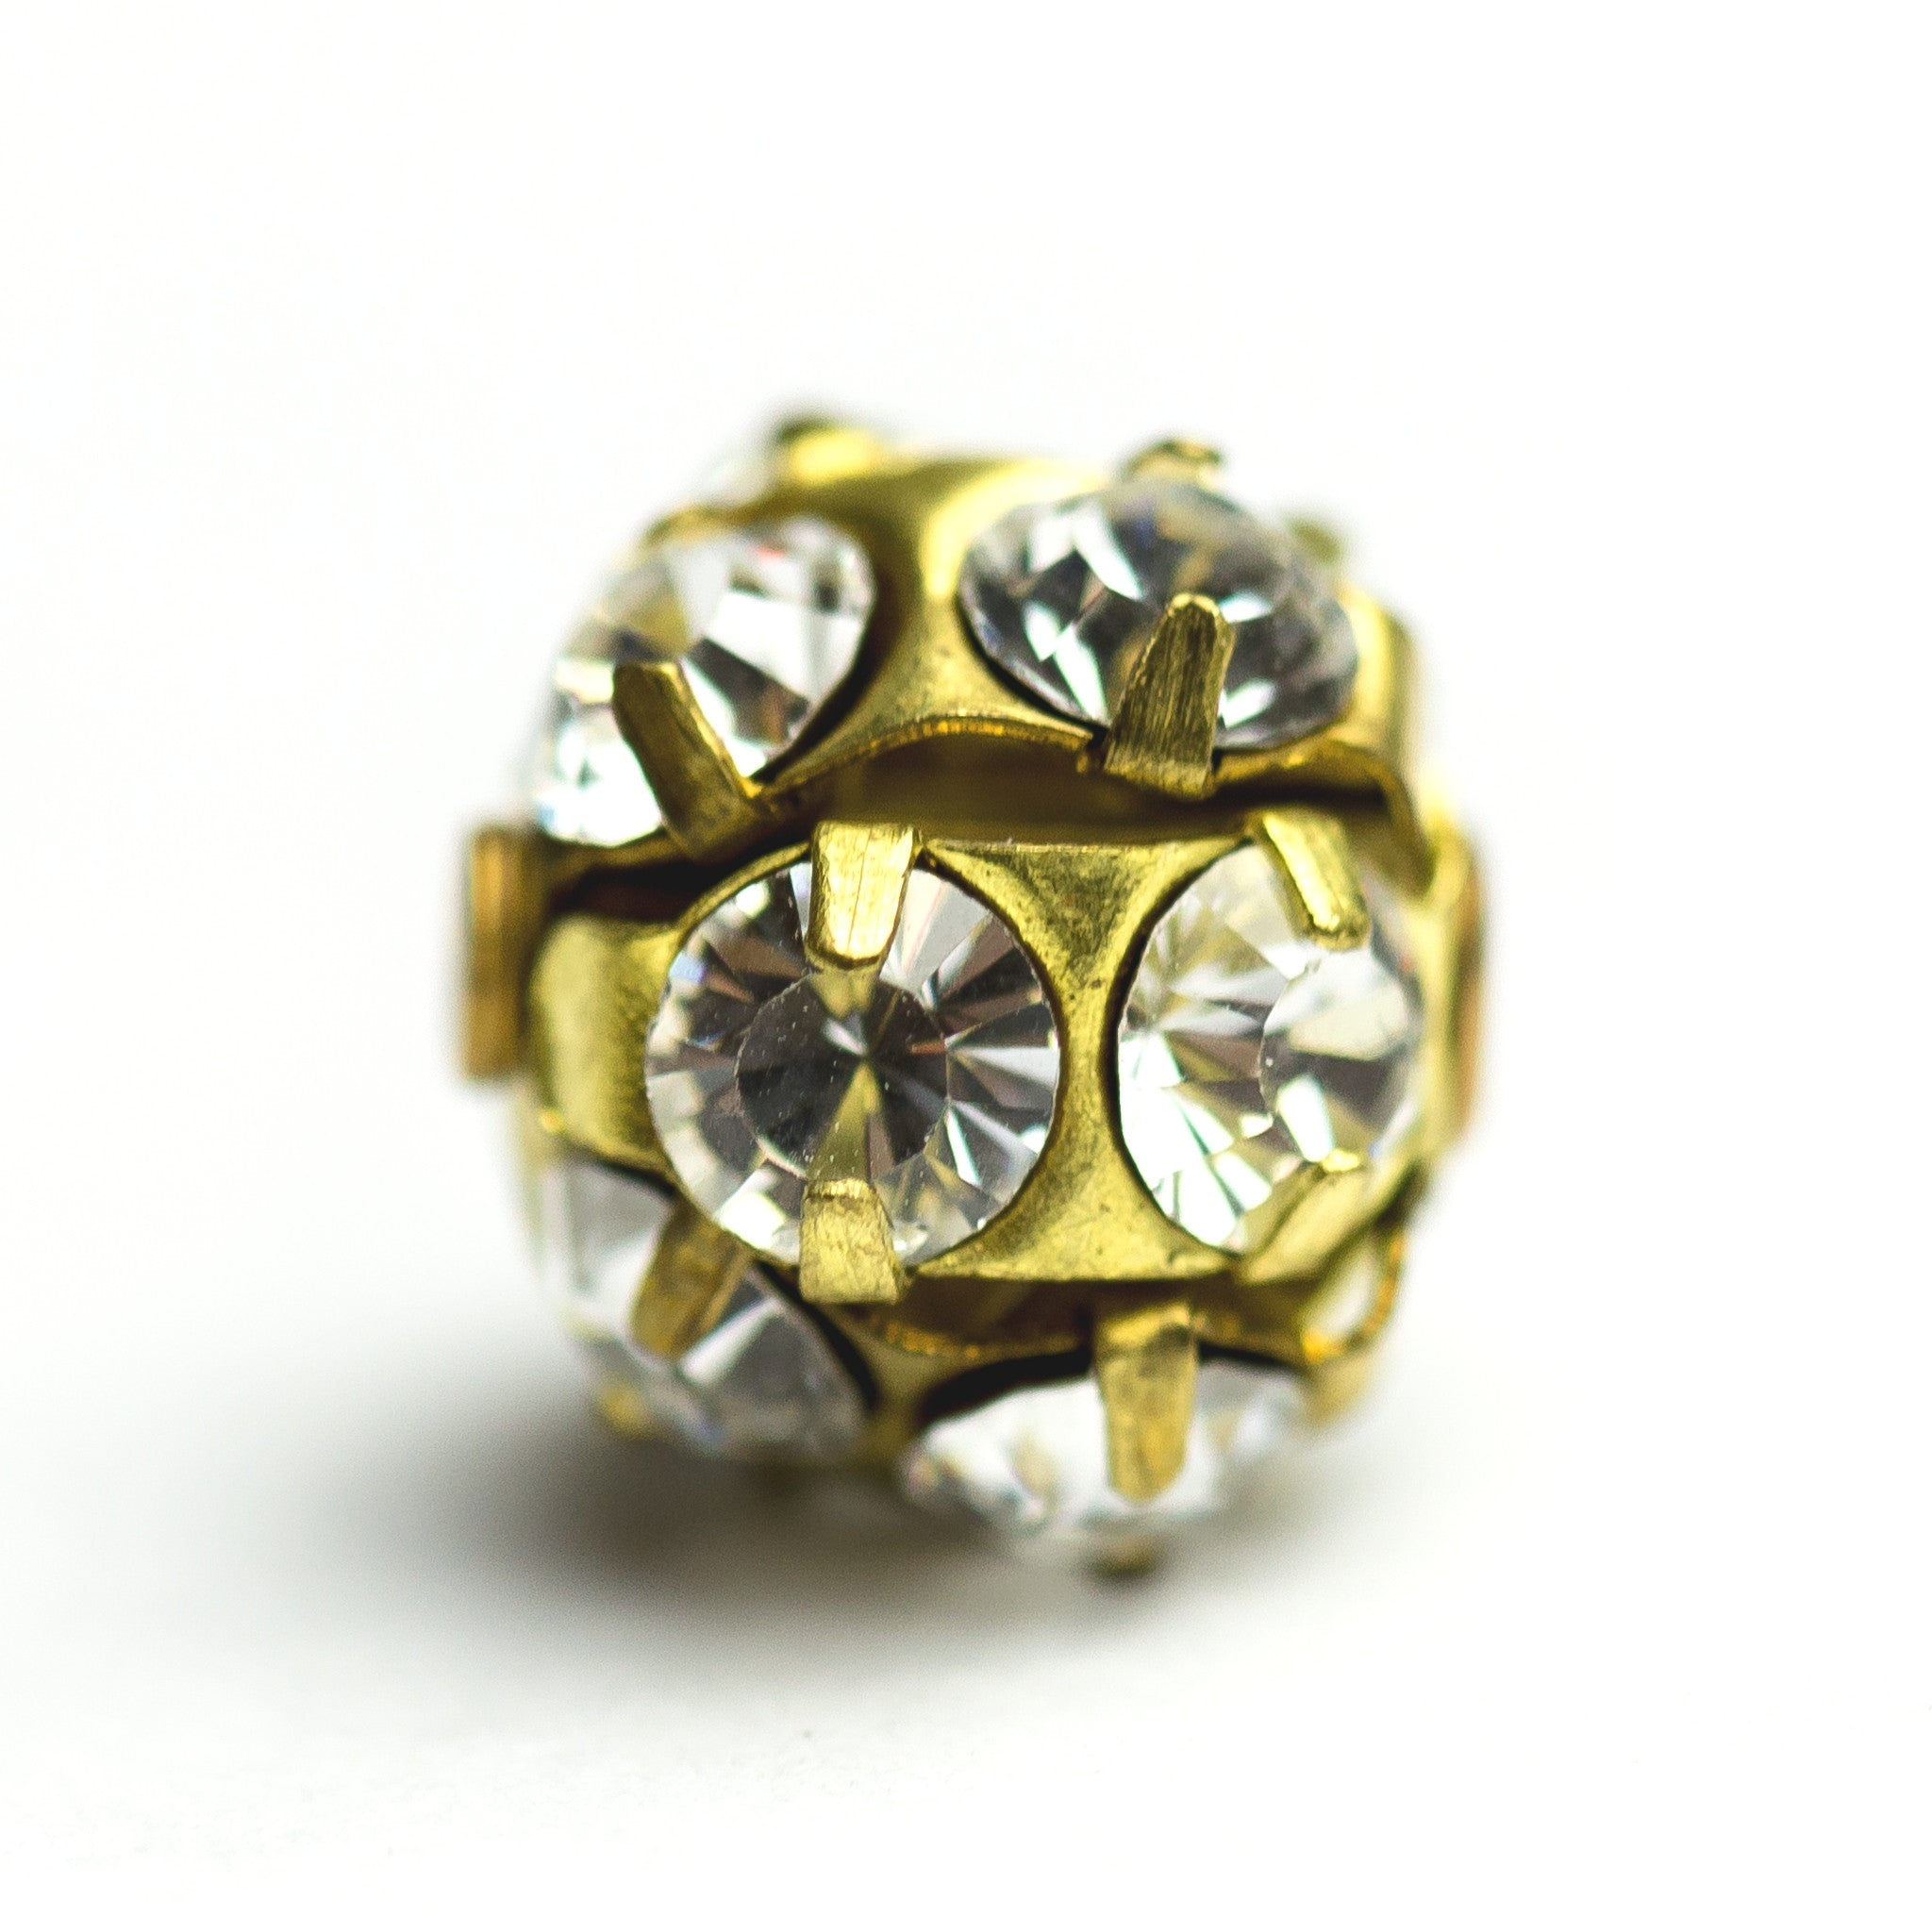 12MM Rhinestone Ball Crystal/Brass (2 pieces)